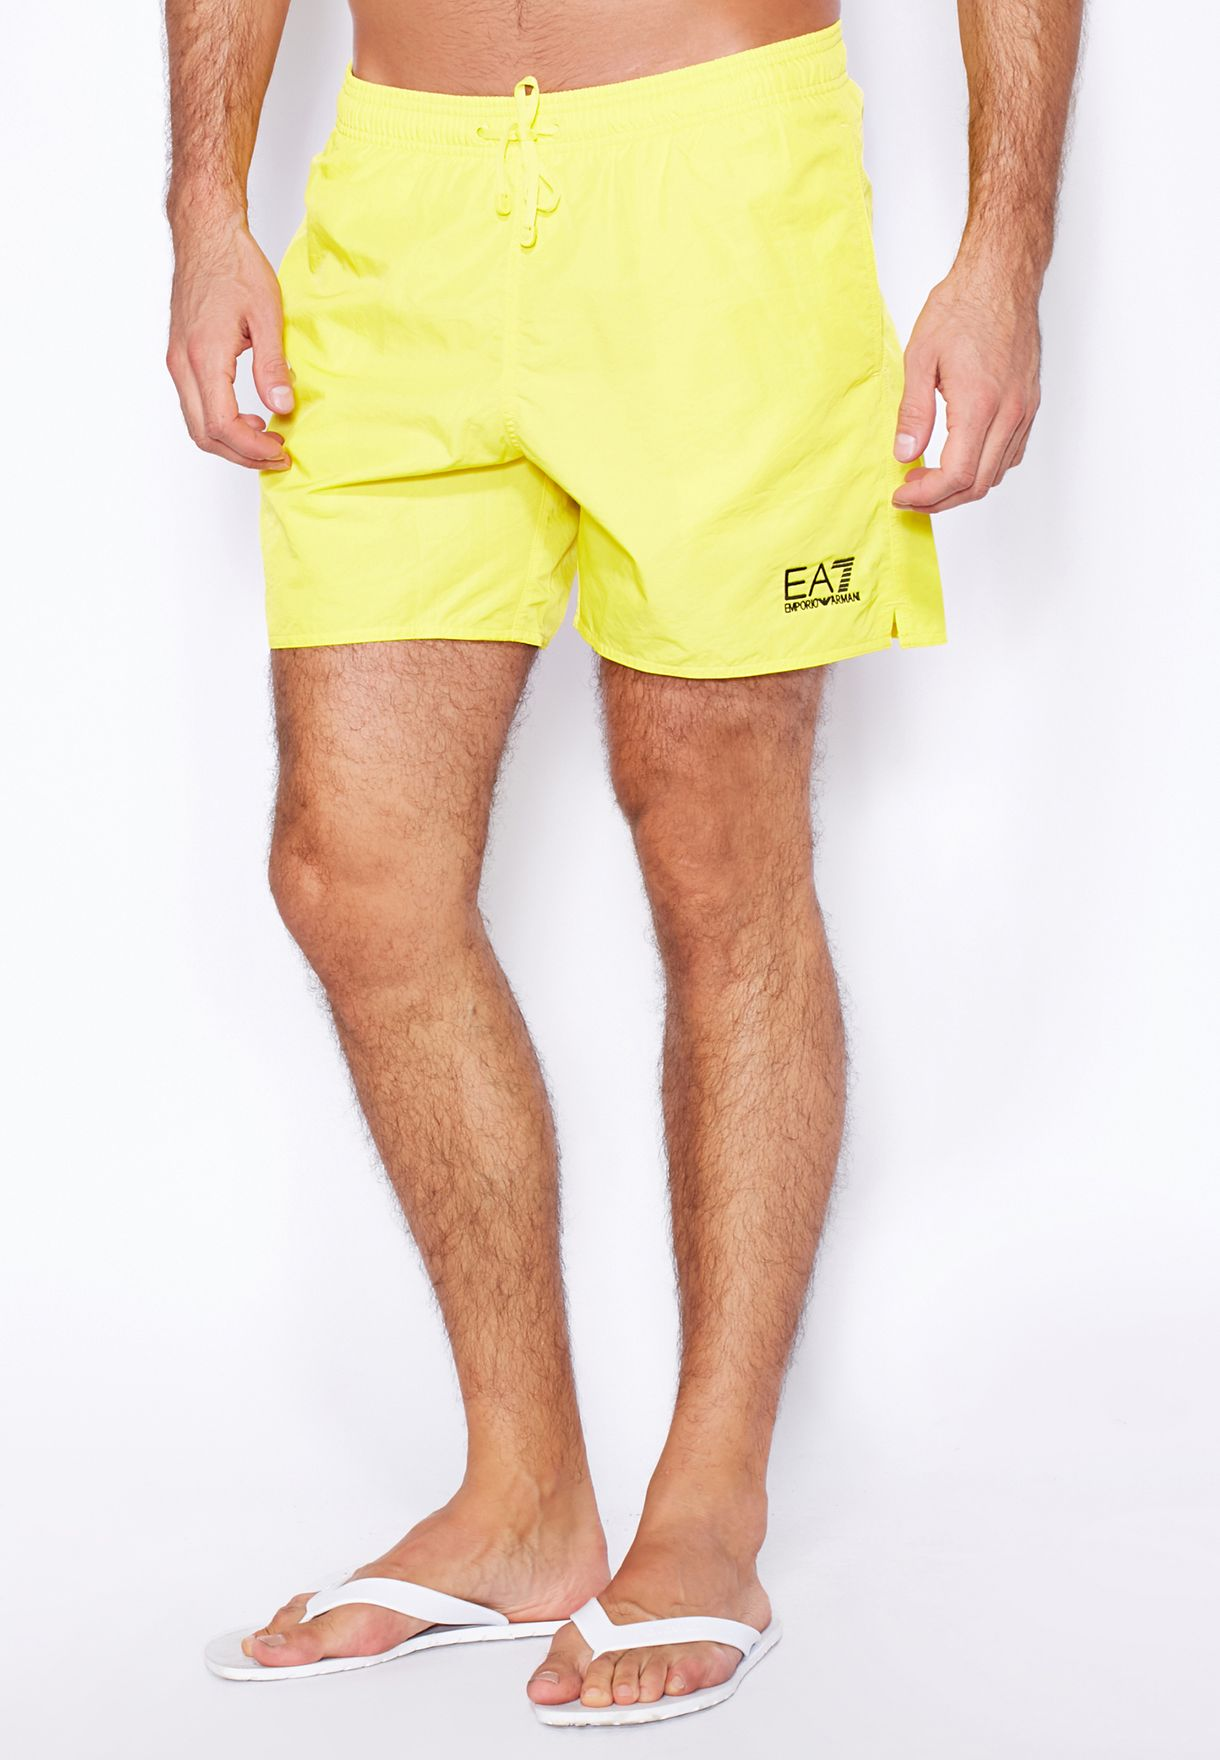 6f342933b93be Shop Ea7 Emporio Armani yellow Sea World Boxers 902000 for Men in ...